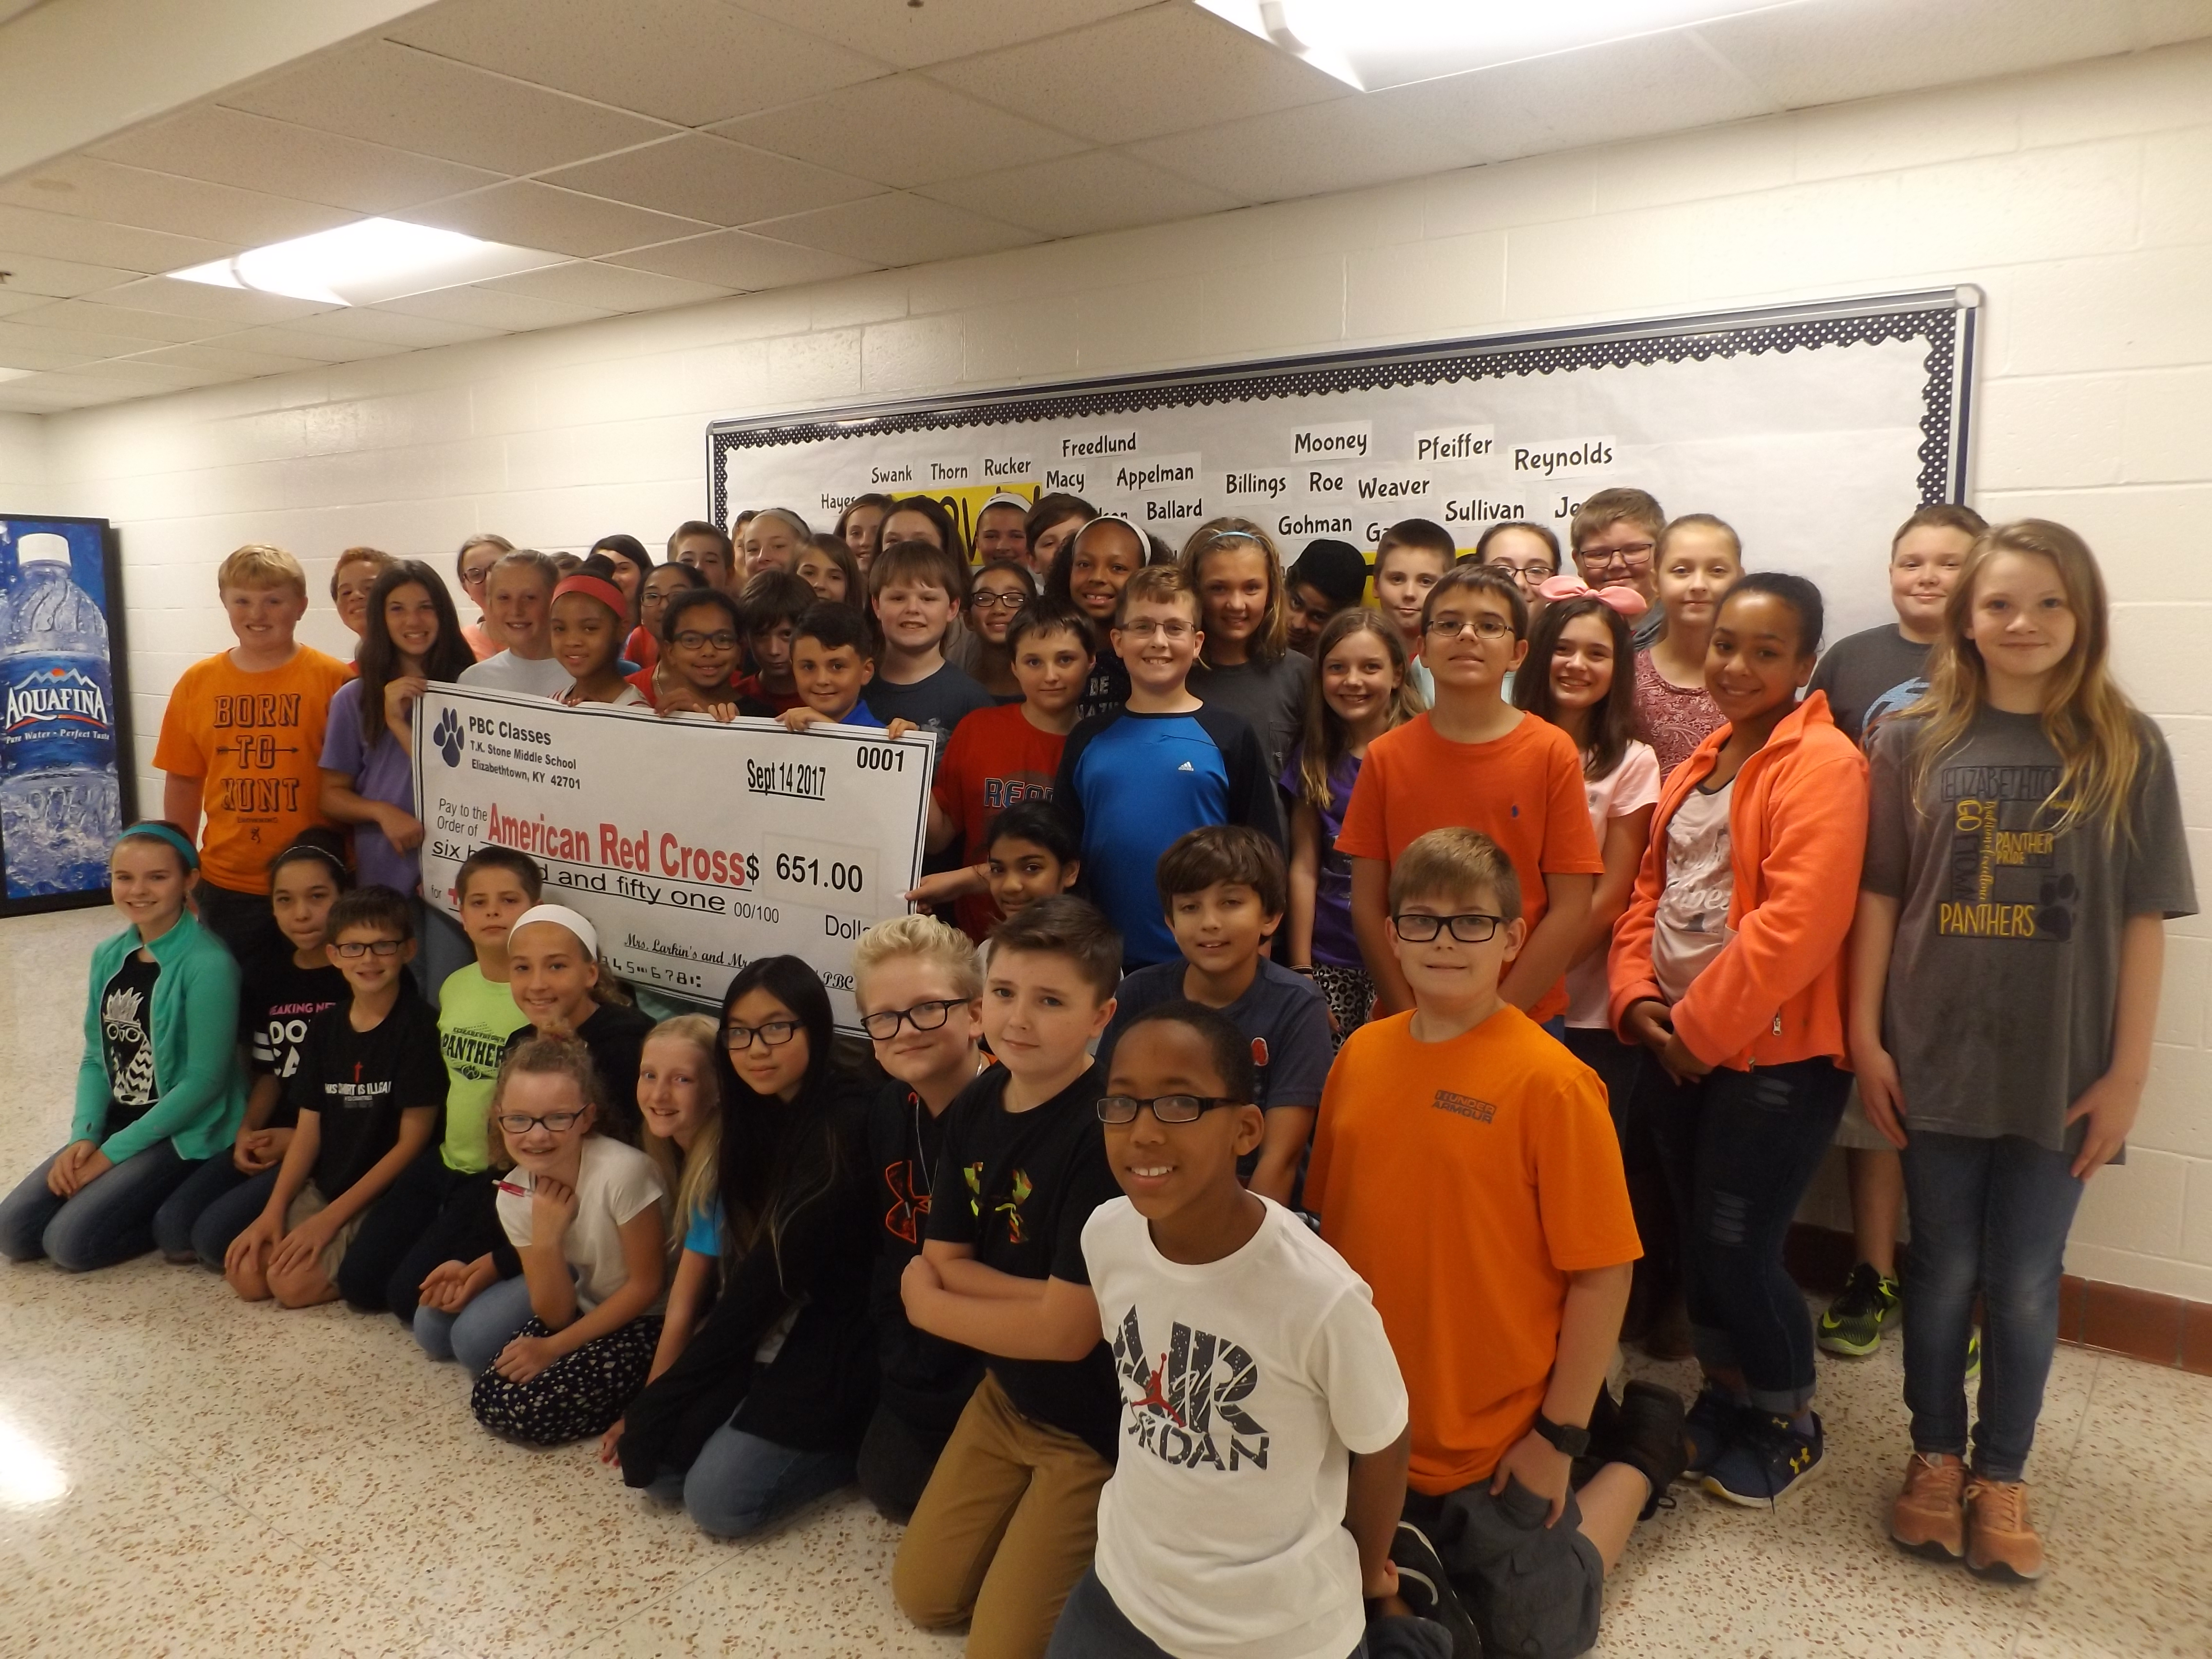 Mrs. Larkin's and Mrs. Reynolds' 6th grade Project Based Communications classes at TK Stone Middle School raised $651.00 for the American Red Cross.